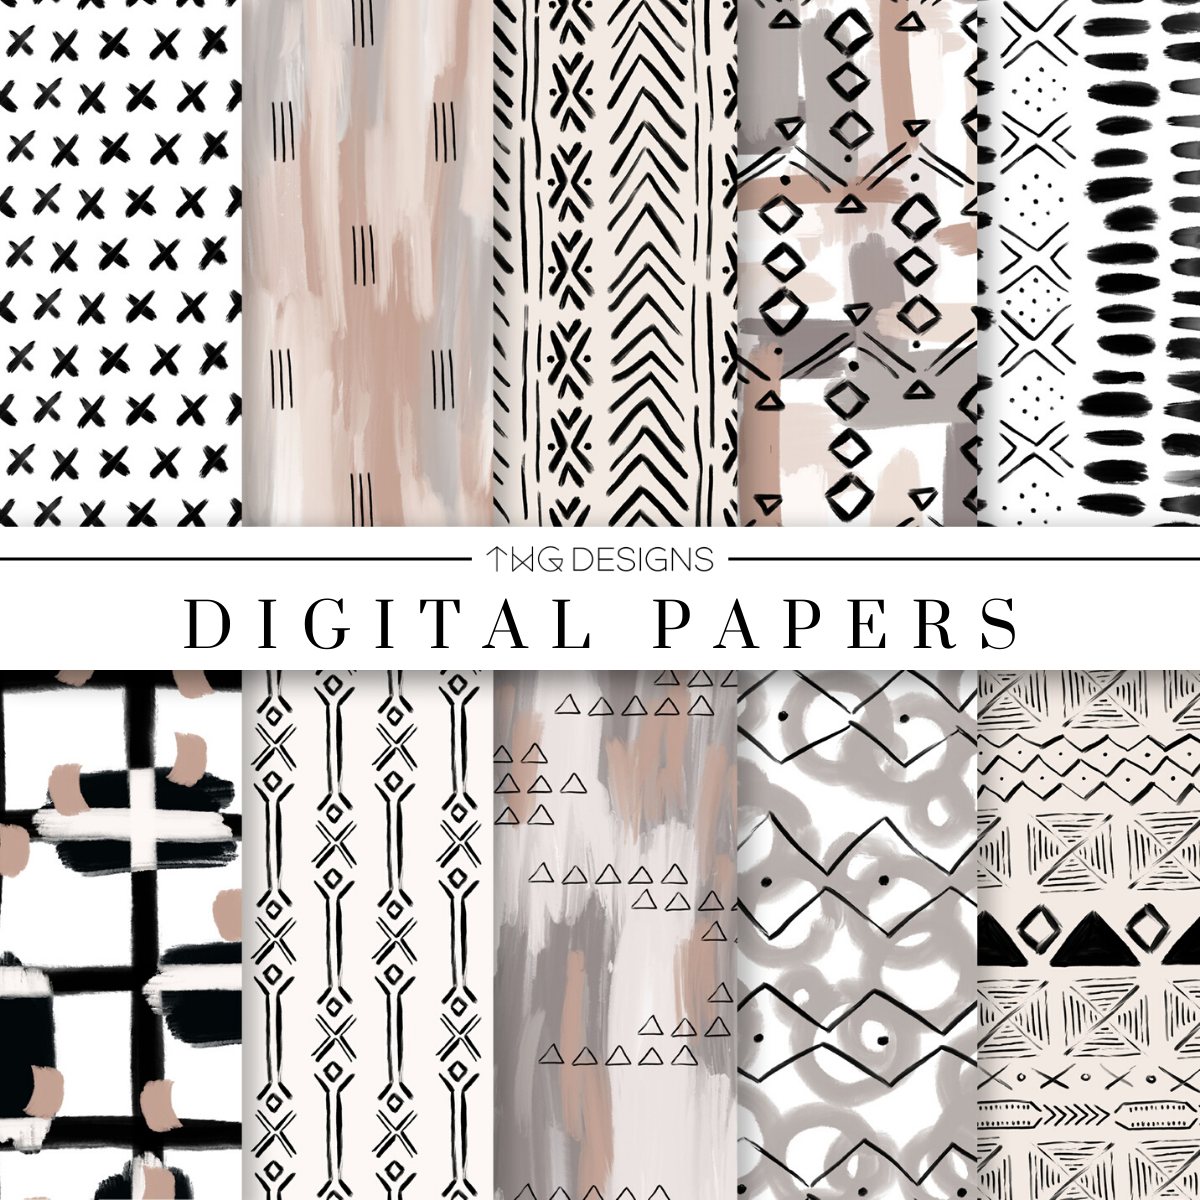 Hygge Digital Paper Set